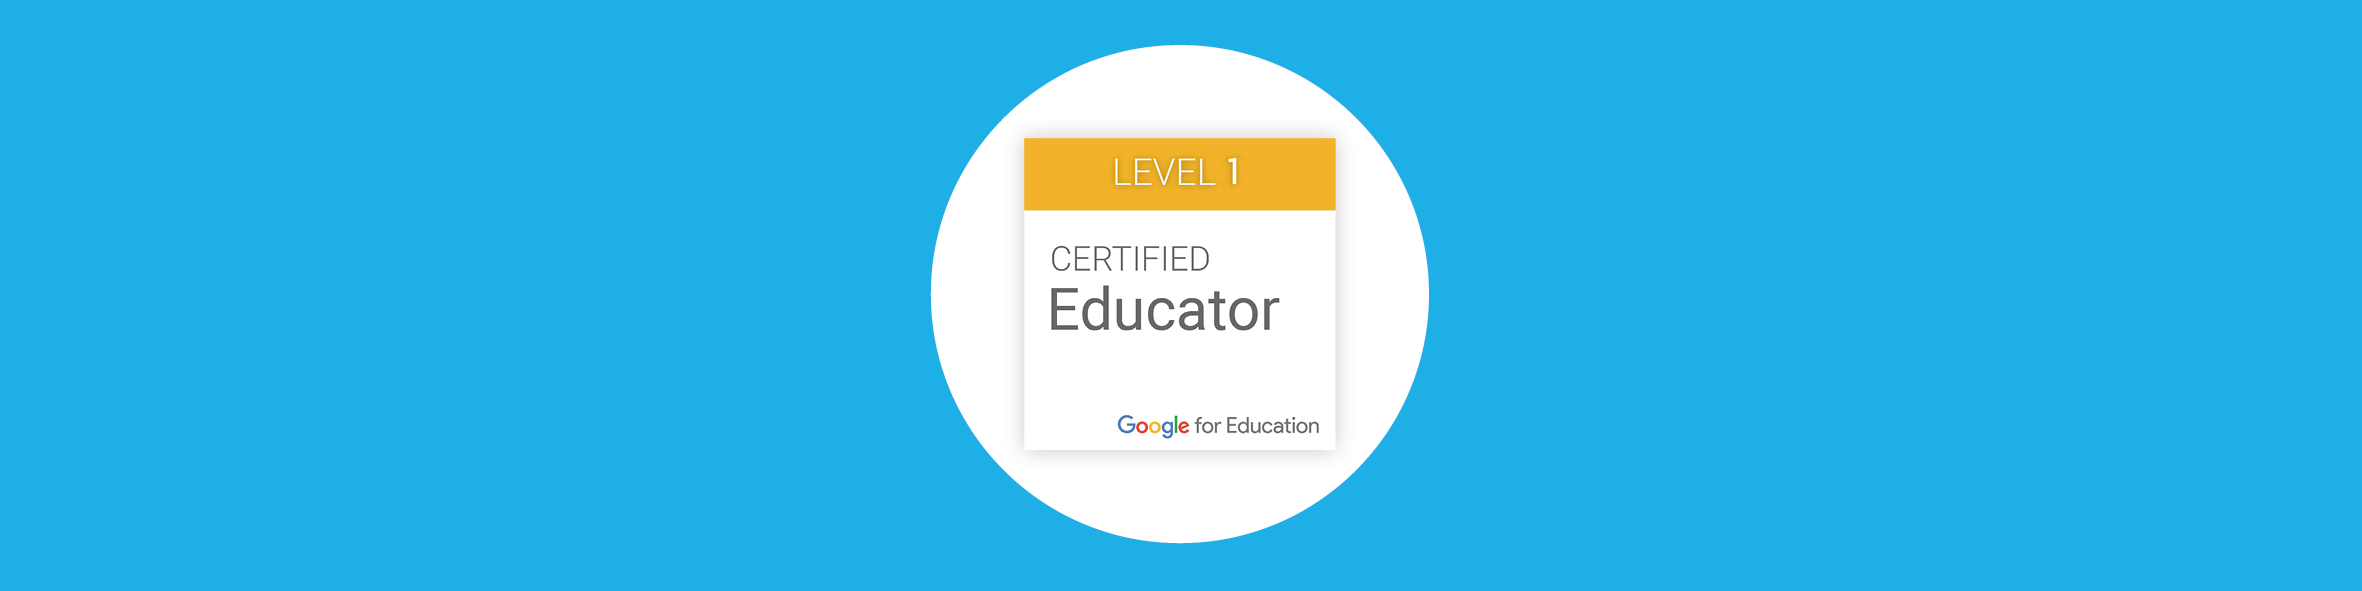 google certified educator training level 1 cloudwise